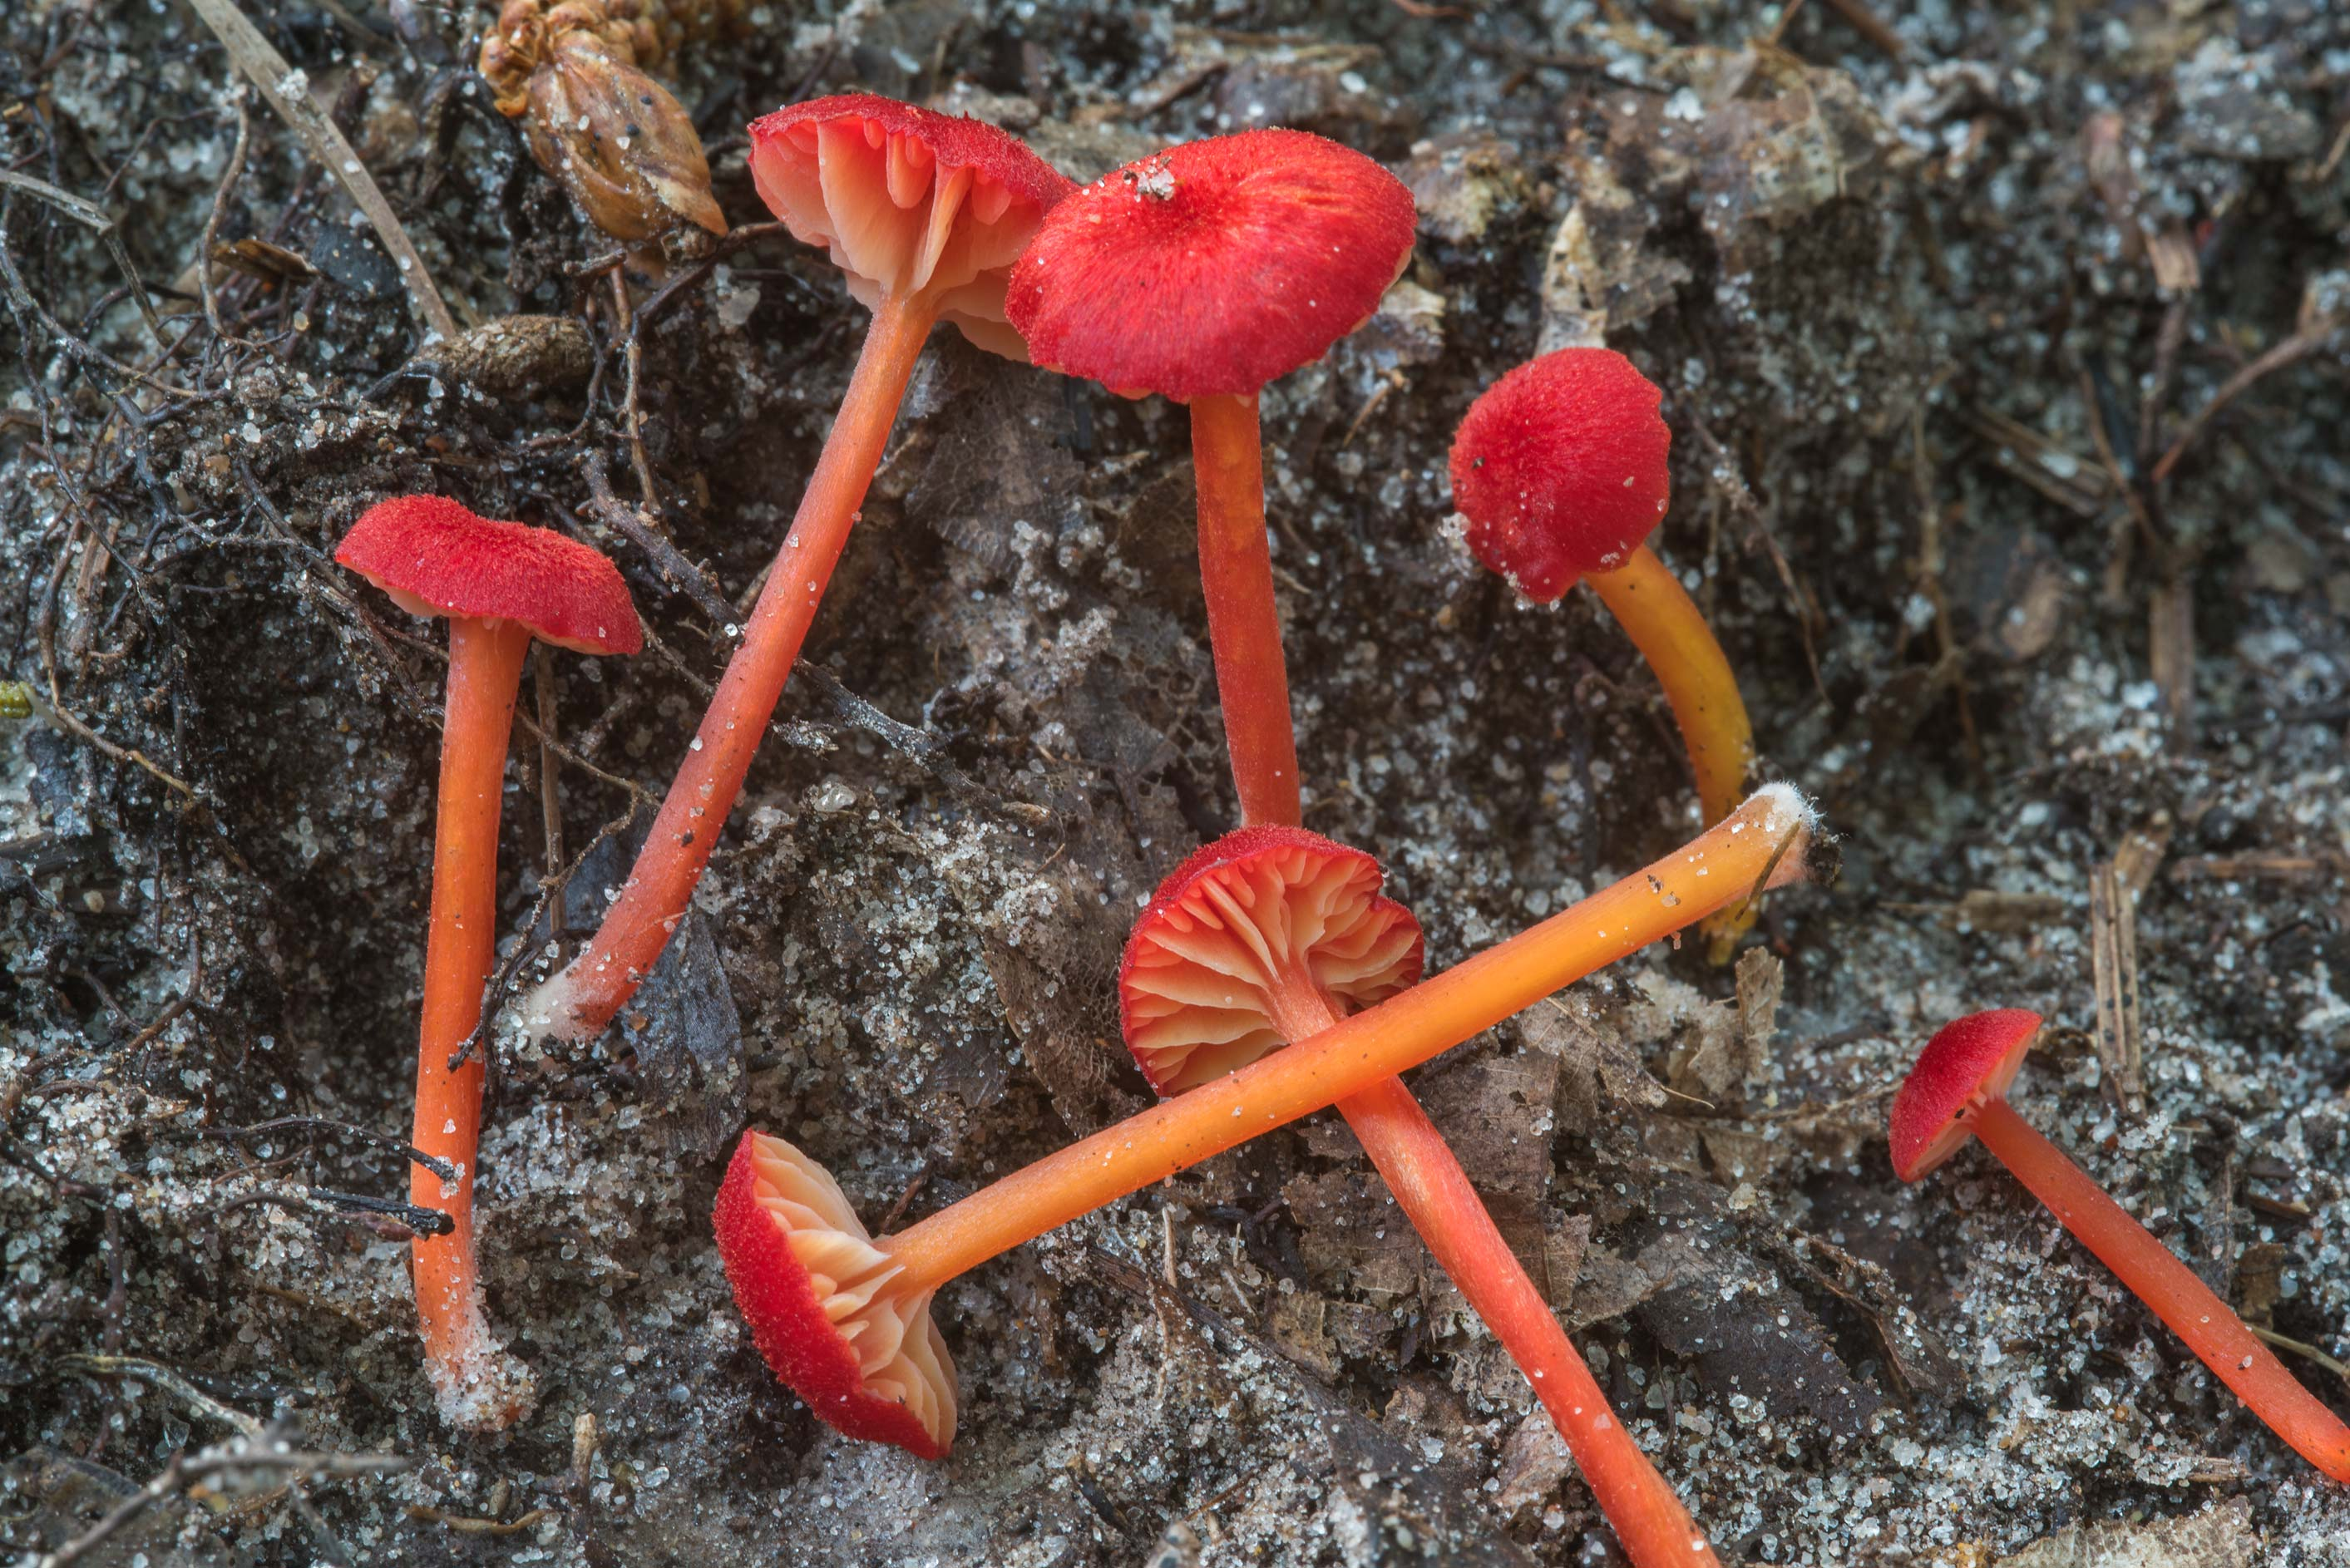 Red waxcap mushrooms Hygrocybe subsect...National Forest near Huntsville, Texas